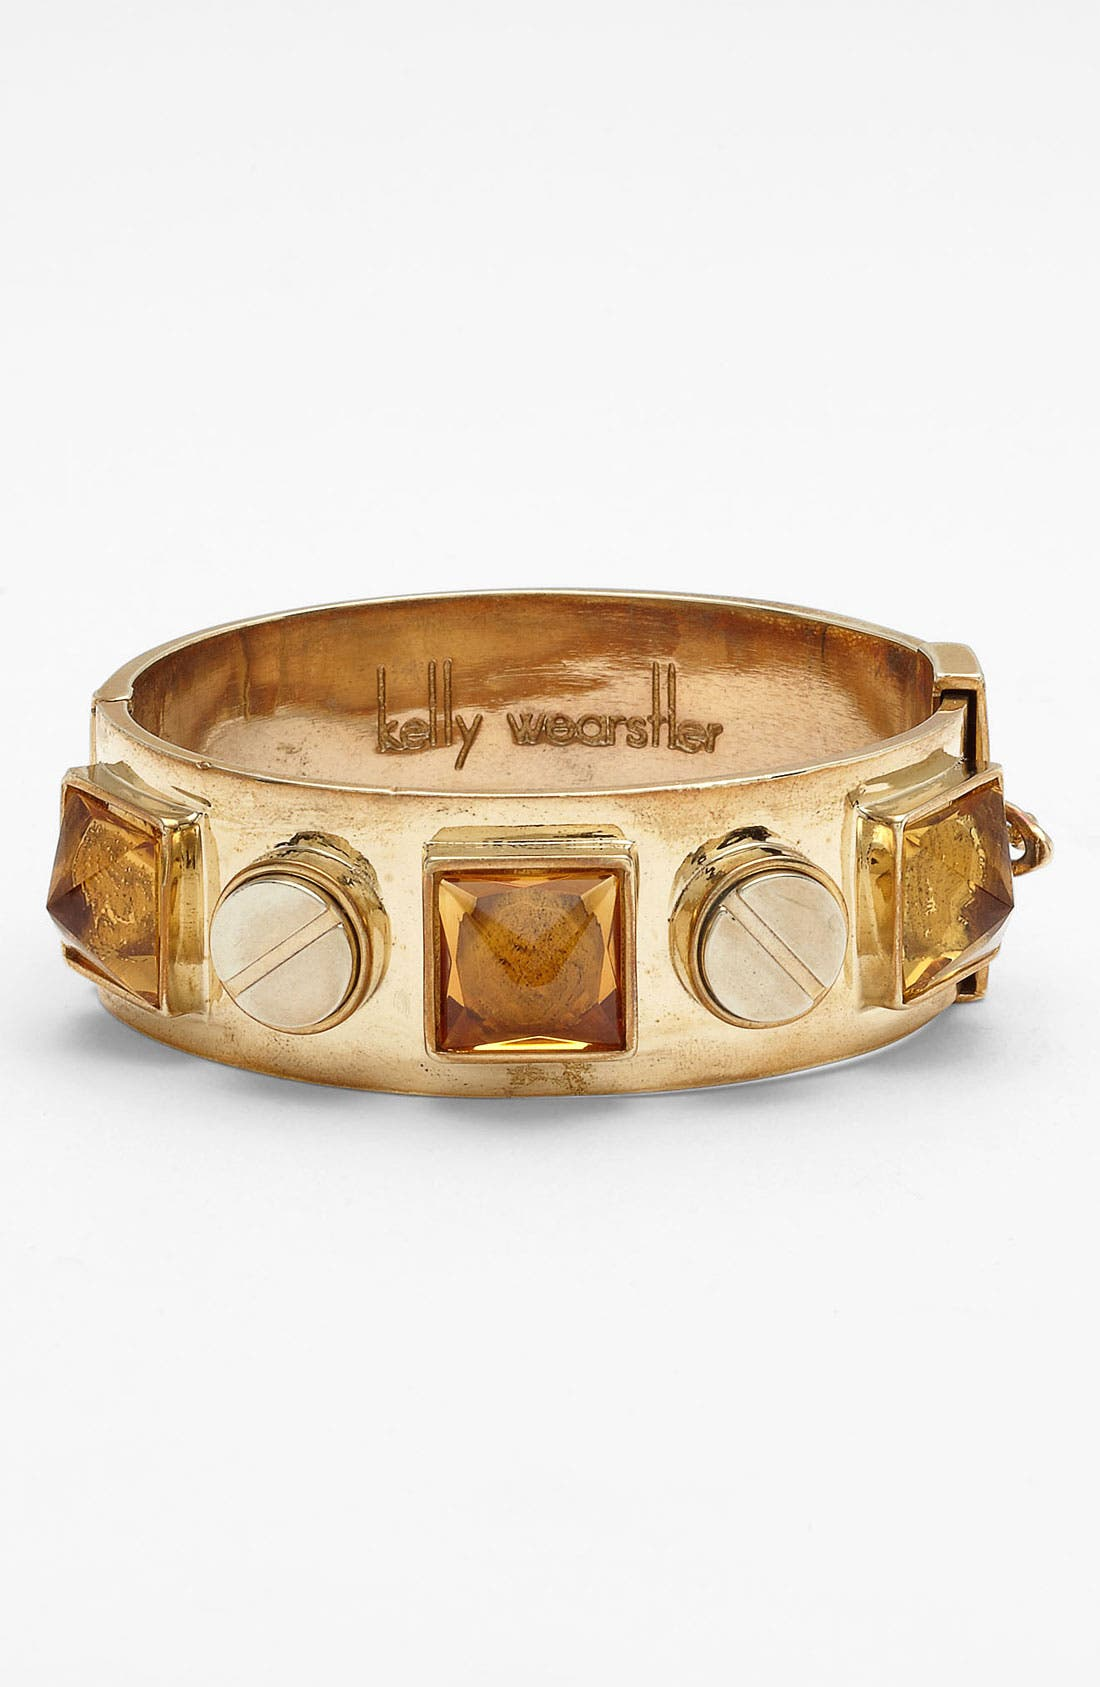 Alternate Image 1 Selected - Kelly Wearstler Screw & Faceted Stone Bangle